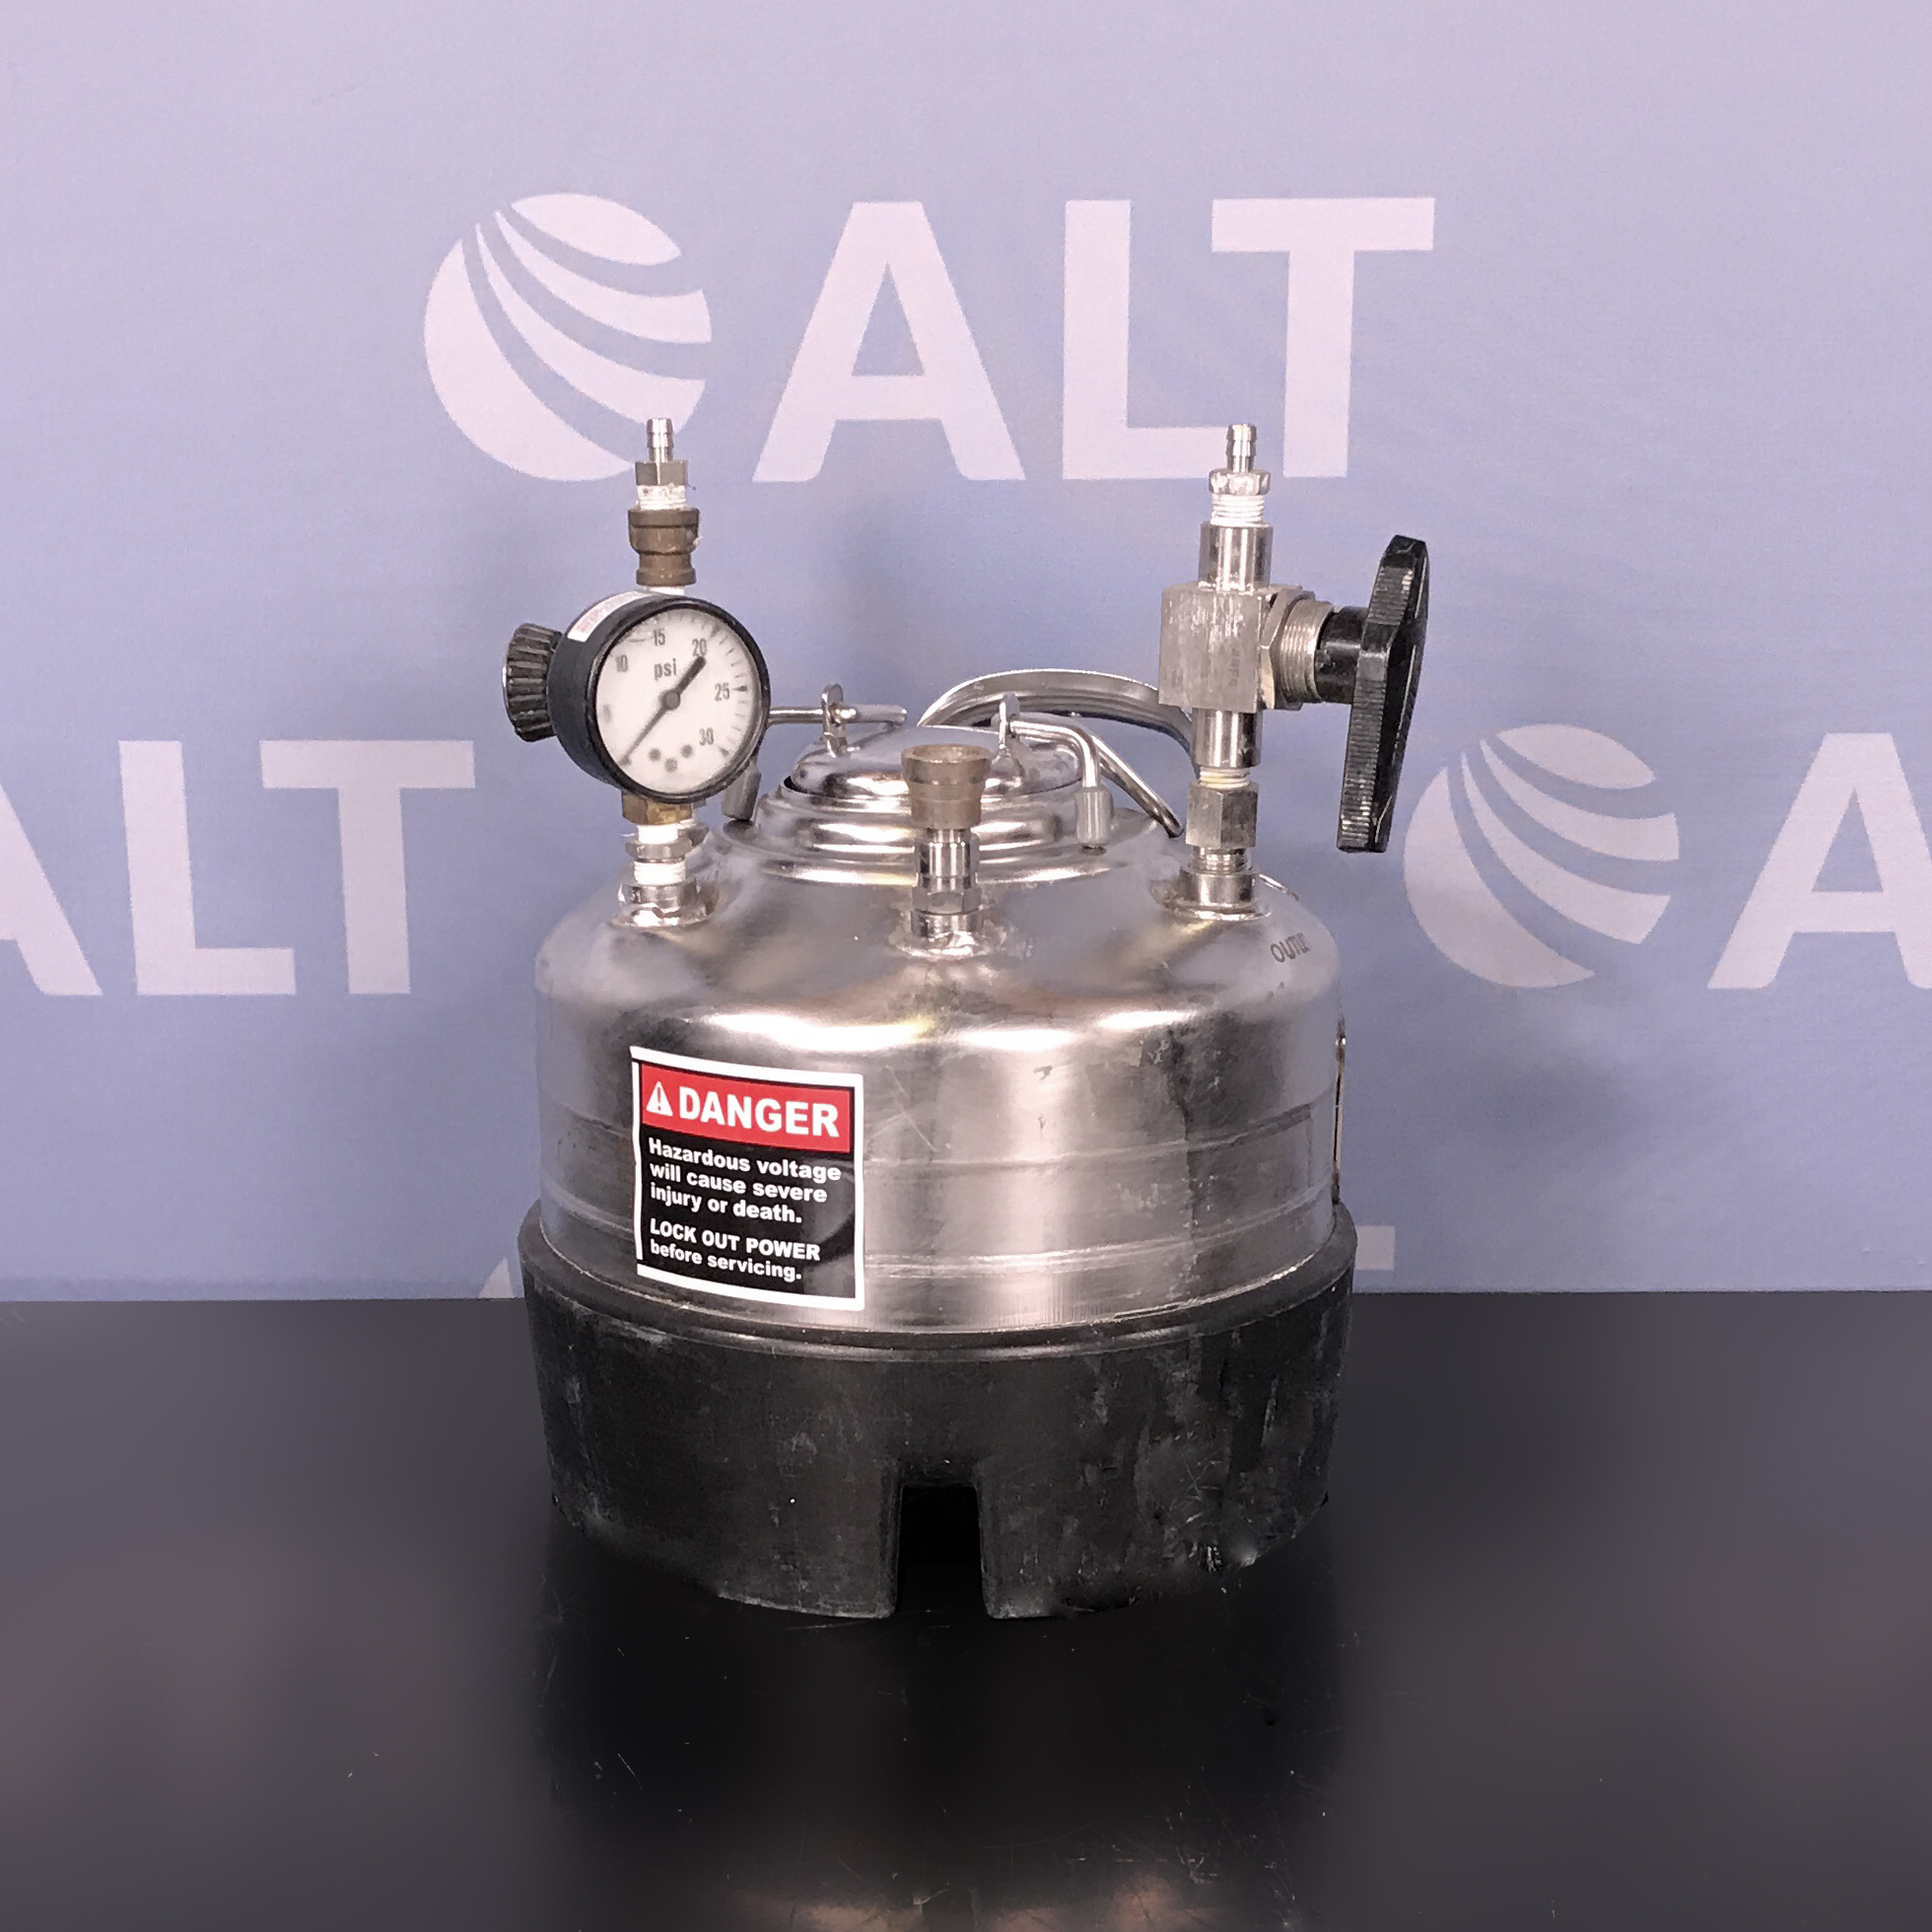 Alloy Products Corp. T316 2-Gallon Wide Mouth Opening Stainless Steel Rubber Skirt Pressure Vessel Image